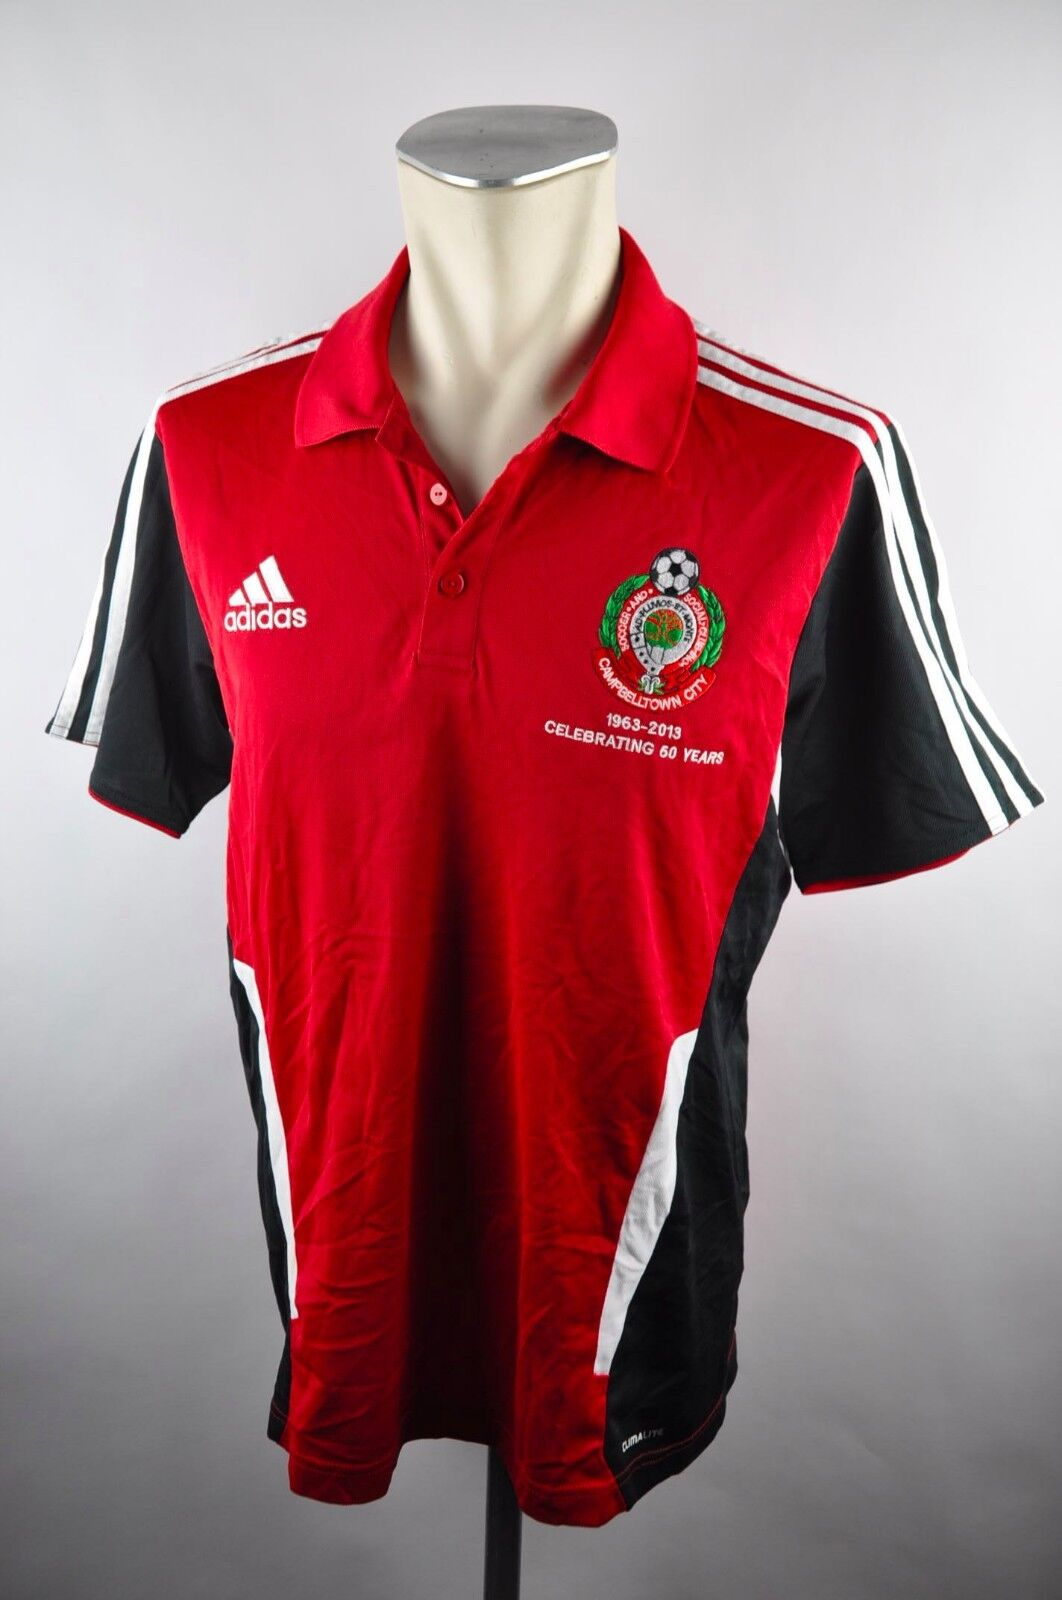 1963 2013 years 50 2012 Adidas M Gr. Polo City Campbelltown